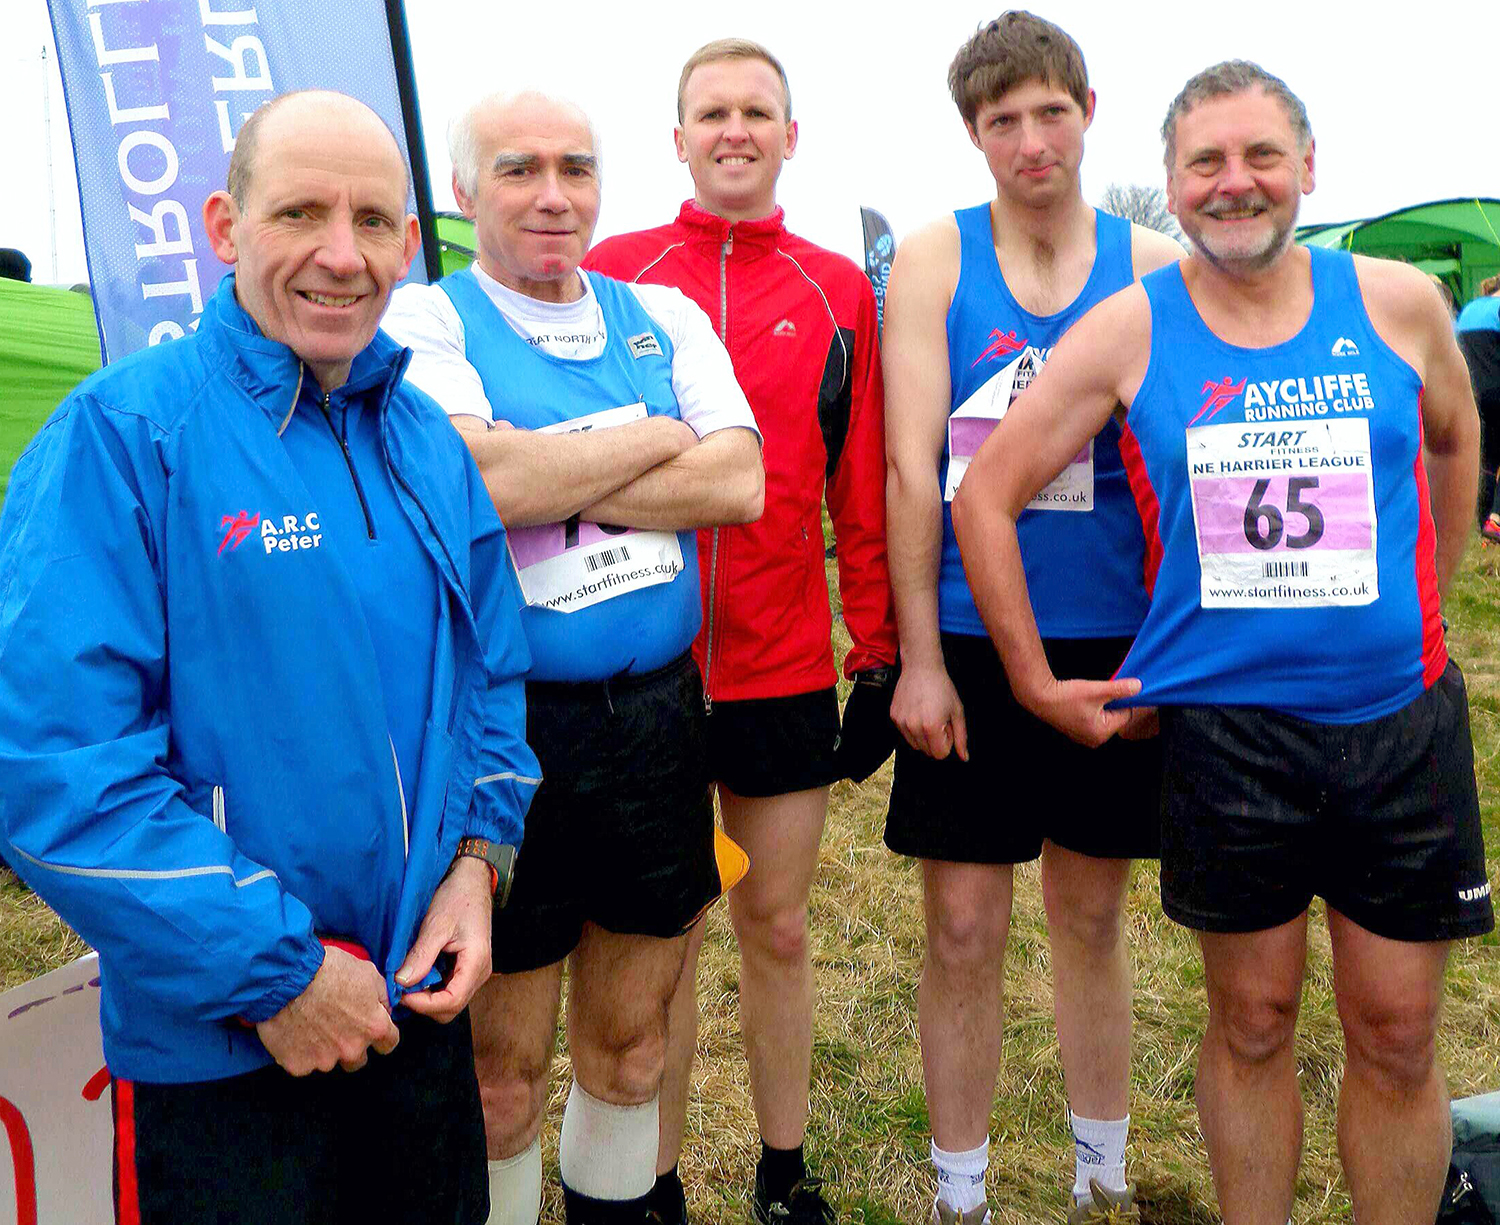 Aycliffe Runners Racing Far & Wide